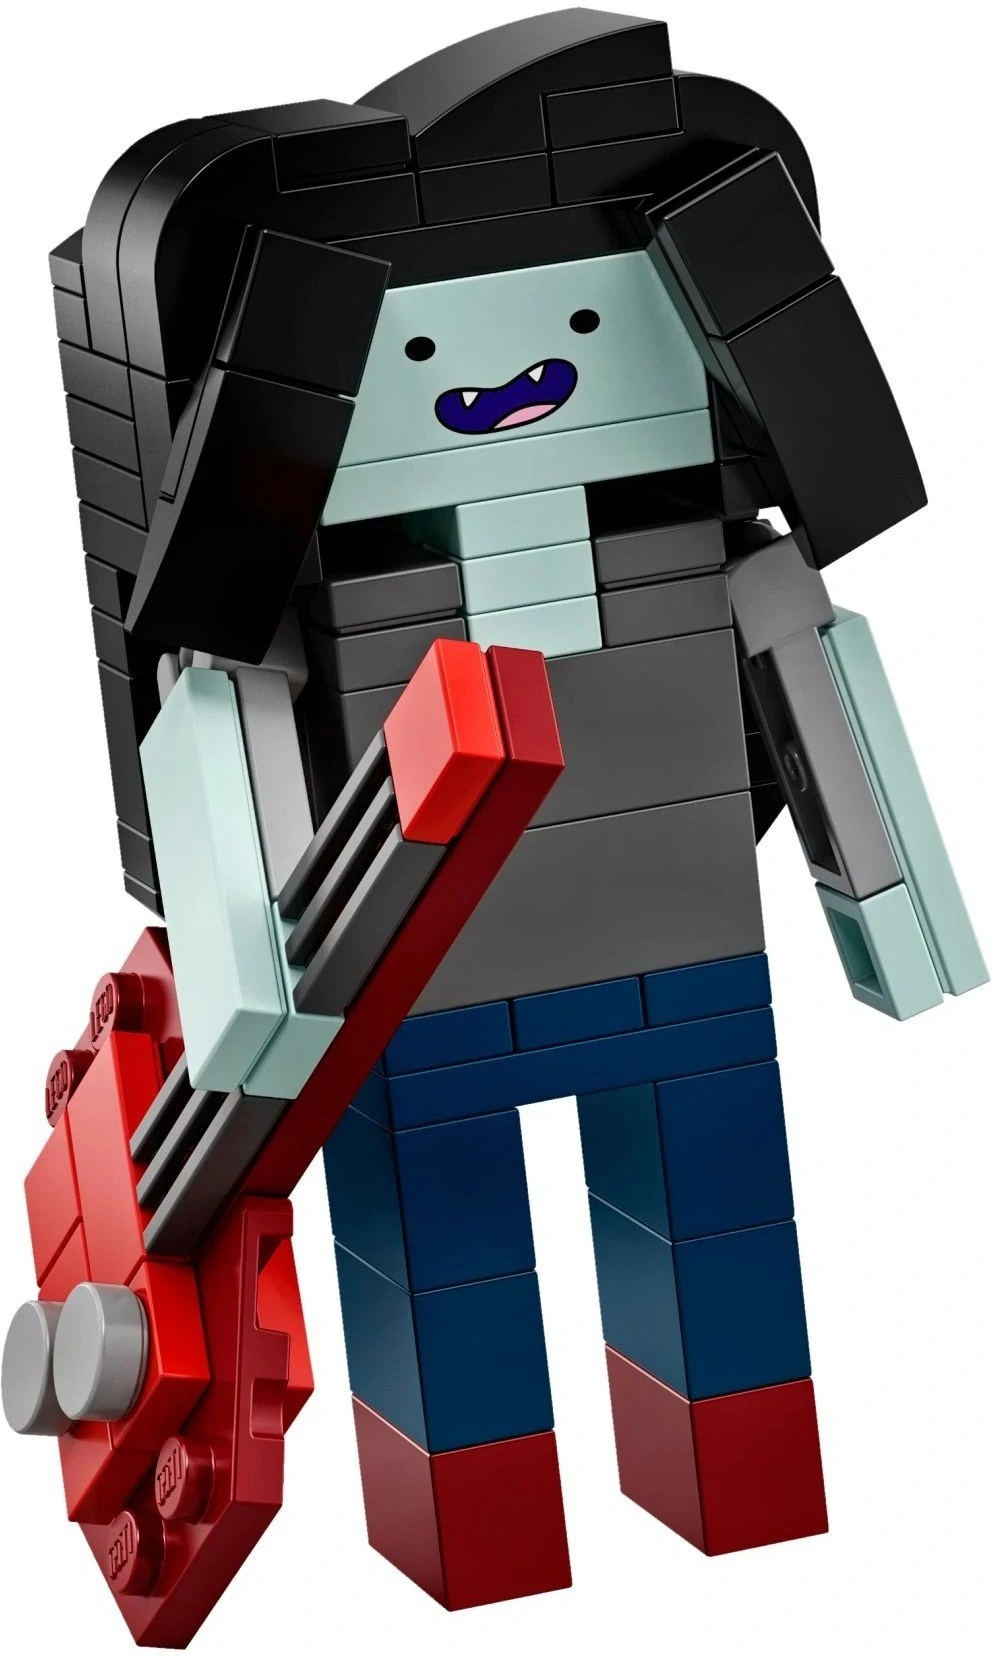 Marceline the Vampire Queen   Brickipedia   FANDOM powered by Wikia Brick Built Marceline from 21308 Adventure Time